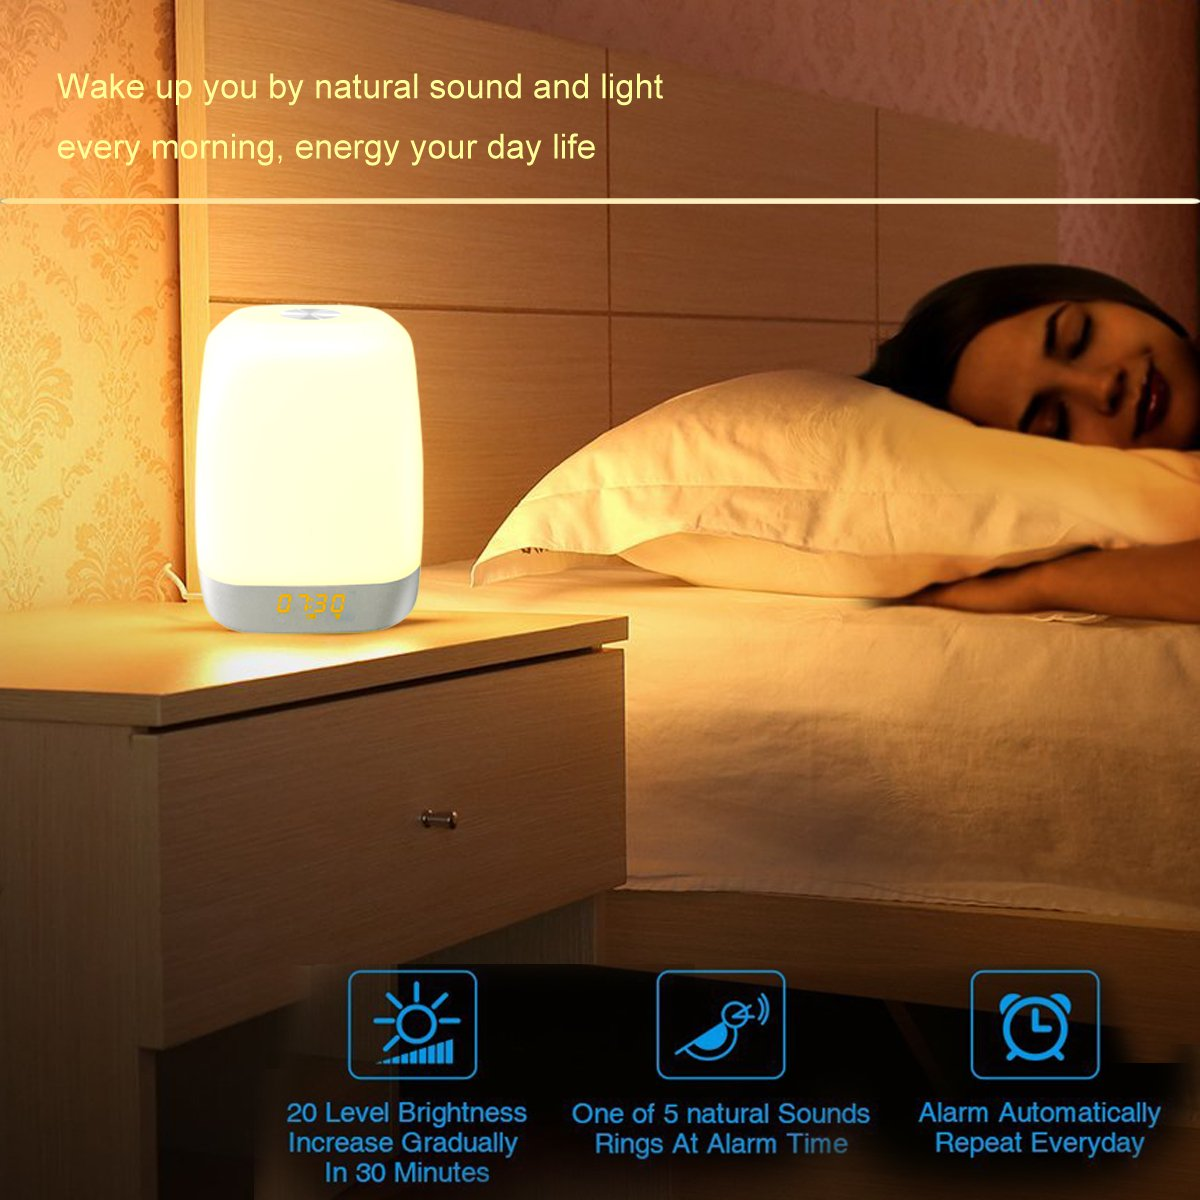 Wake up Lights, Rechargeable Sunrise Alarm Clock Bedside Lamp with Sunset Simulation and 5 Natural Sounds, Touch Control Night Light, 3-Level Dimming for Bedroom and Heavy Sleepers